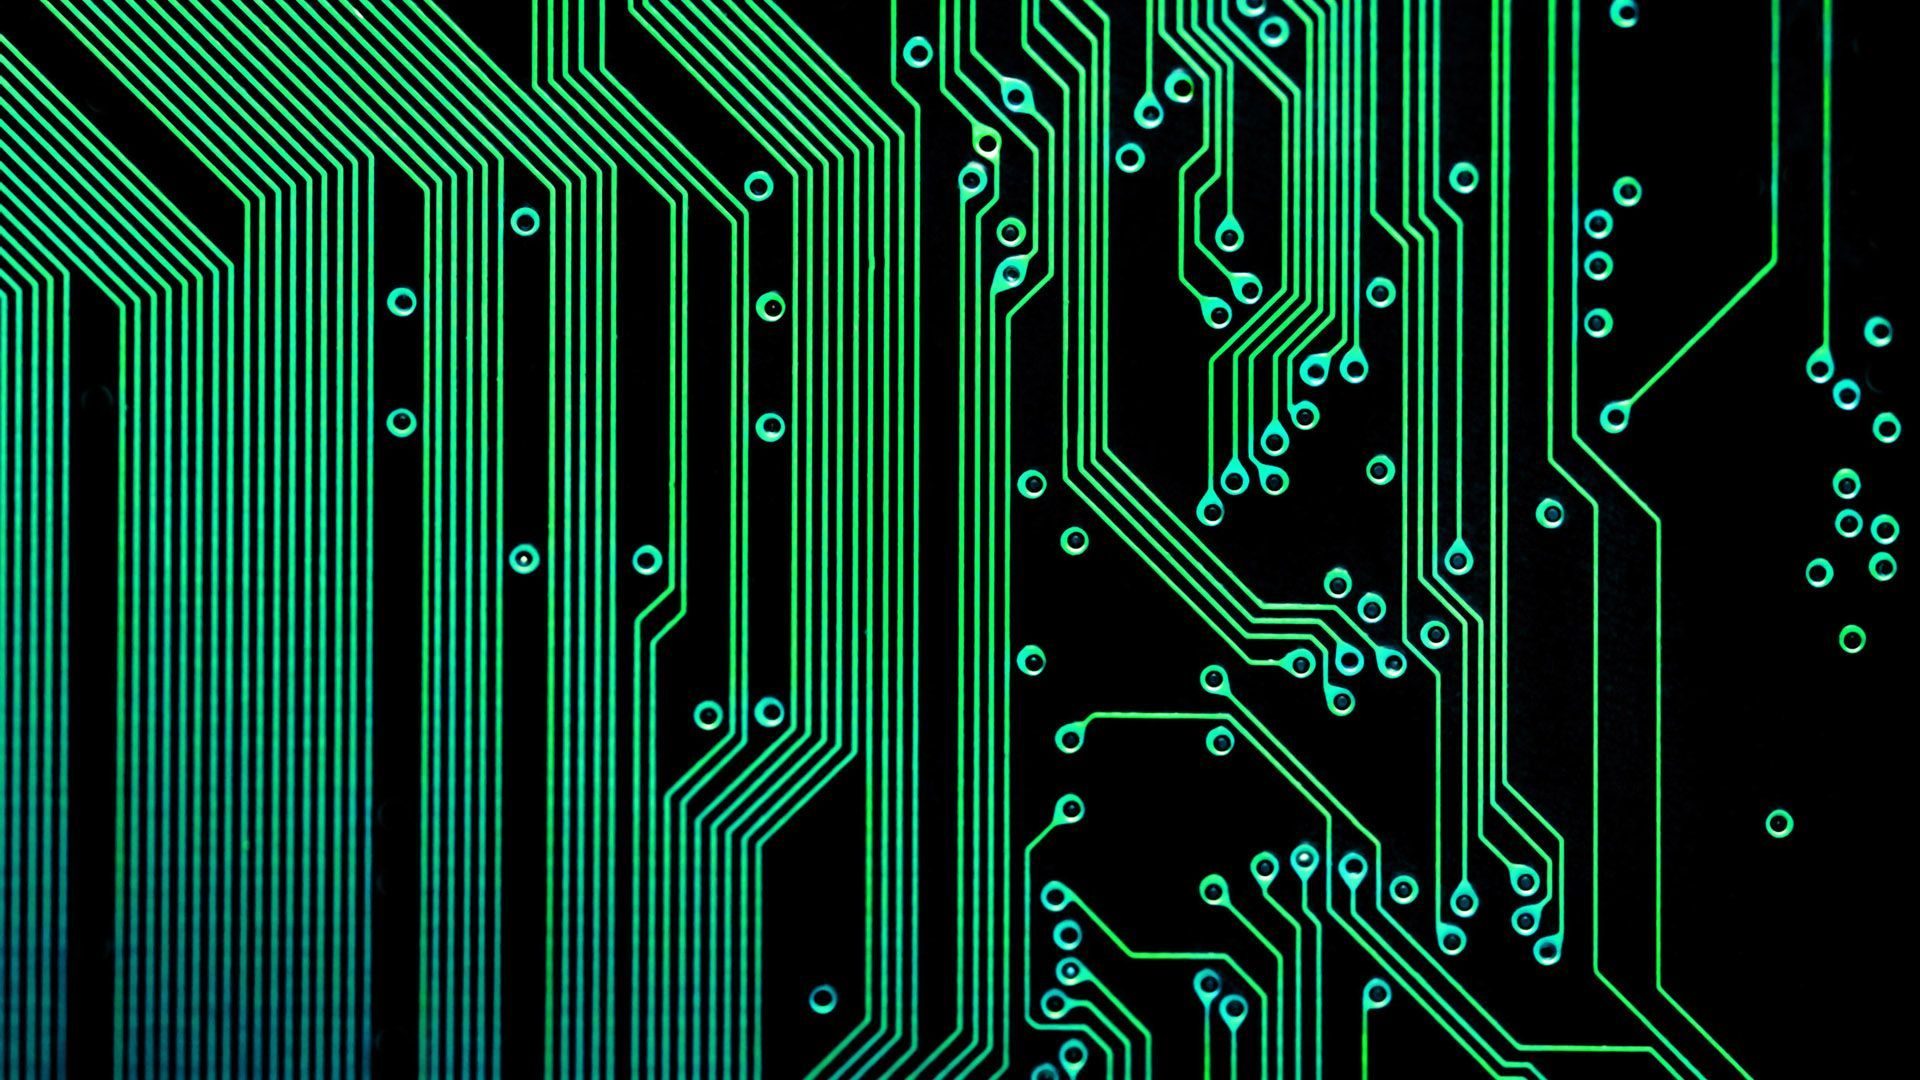 Circuit Board Backgrounds (32 Wallpapers) - Adorable ...